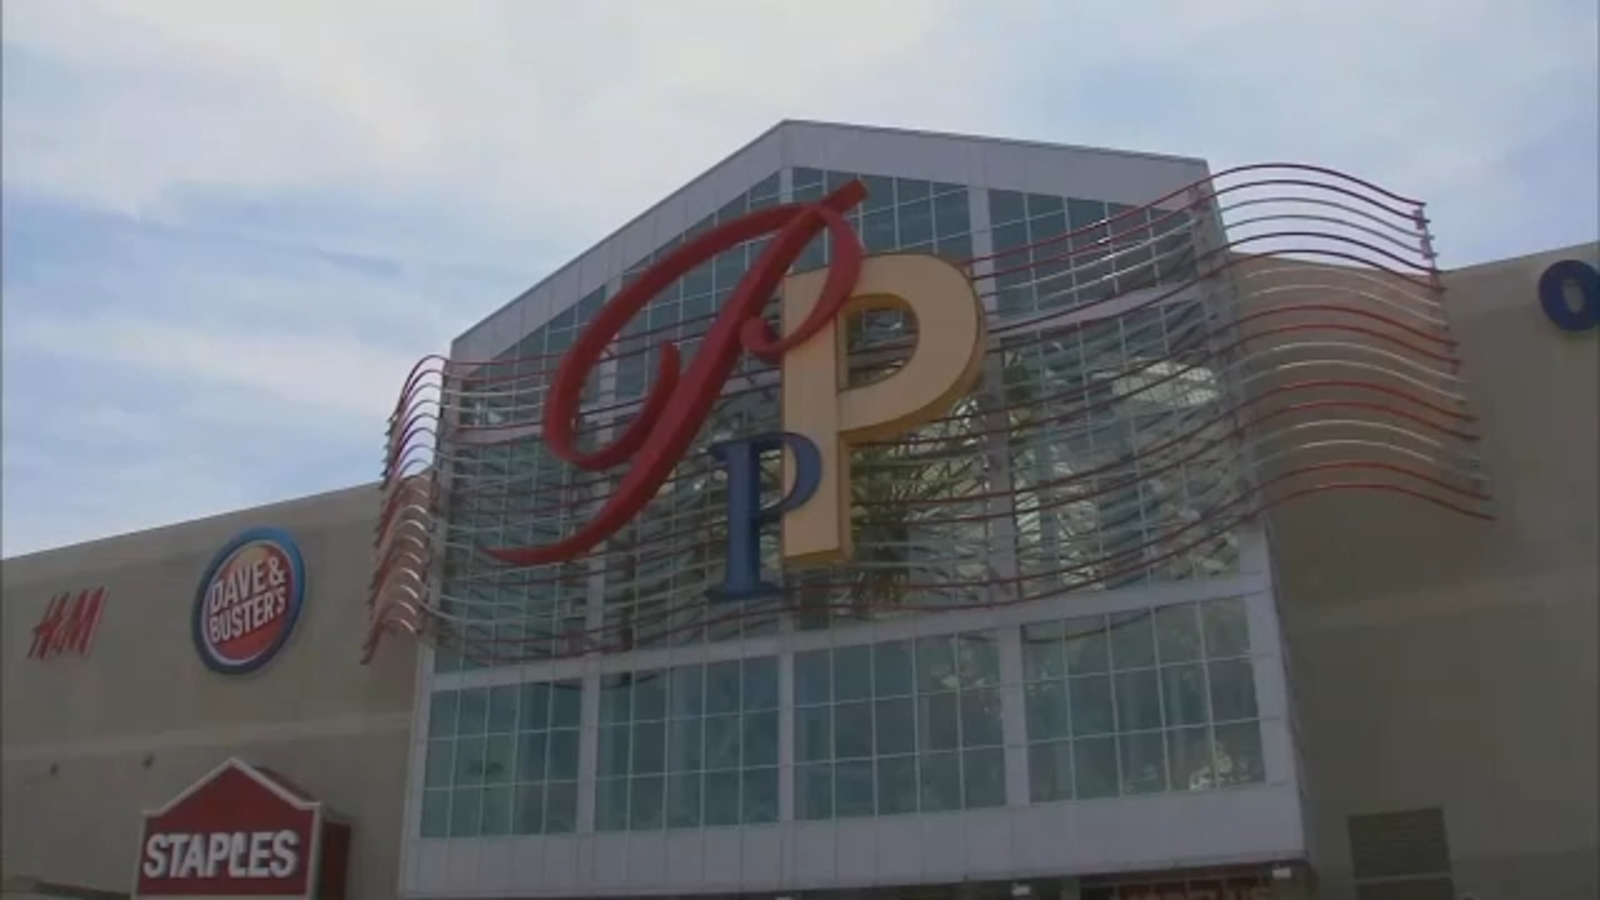 Reopen New York Palisades Center Mall Store Owners In West Nyack Push For Reopening Abc7 New York